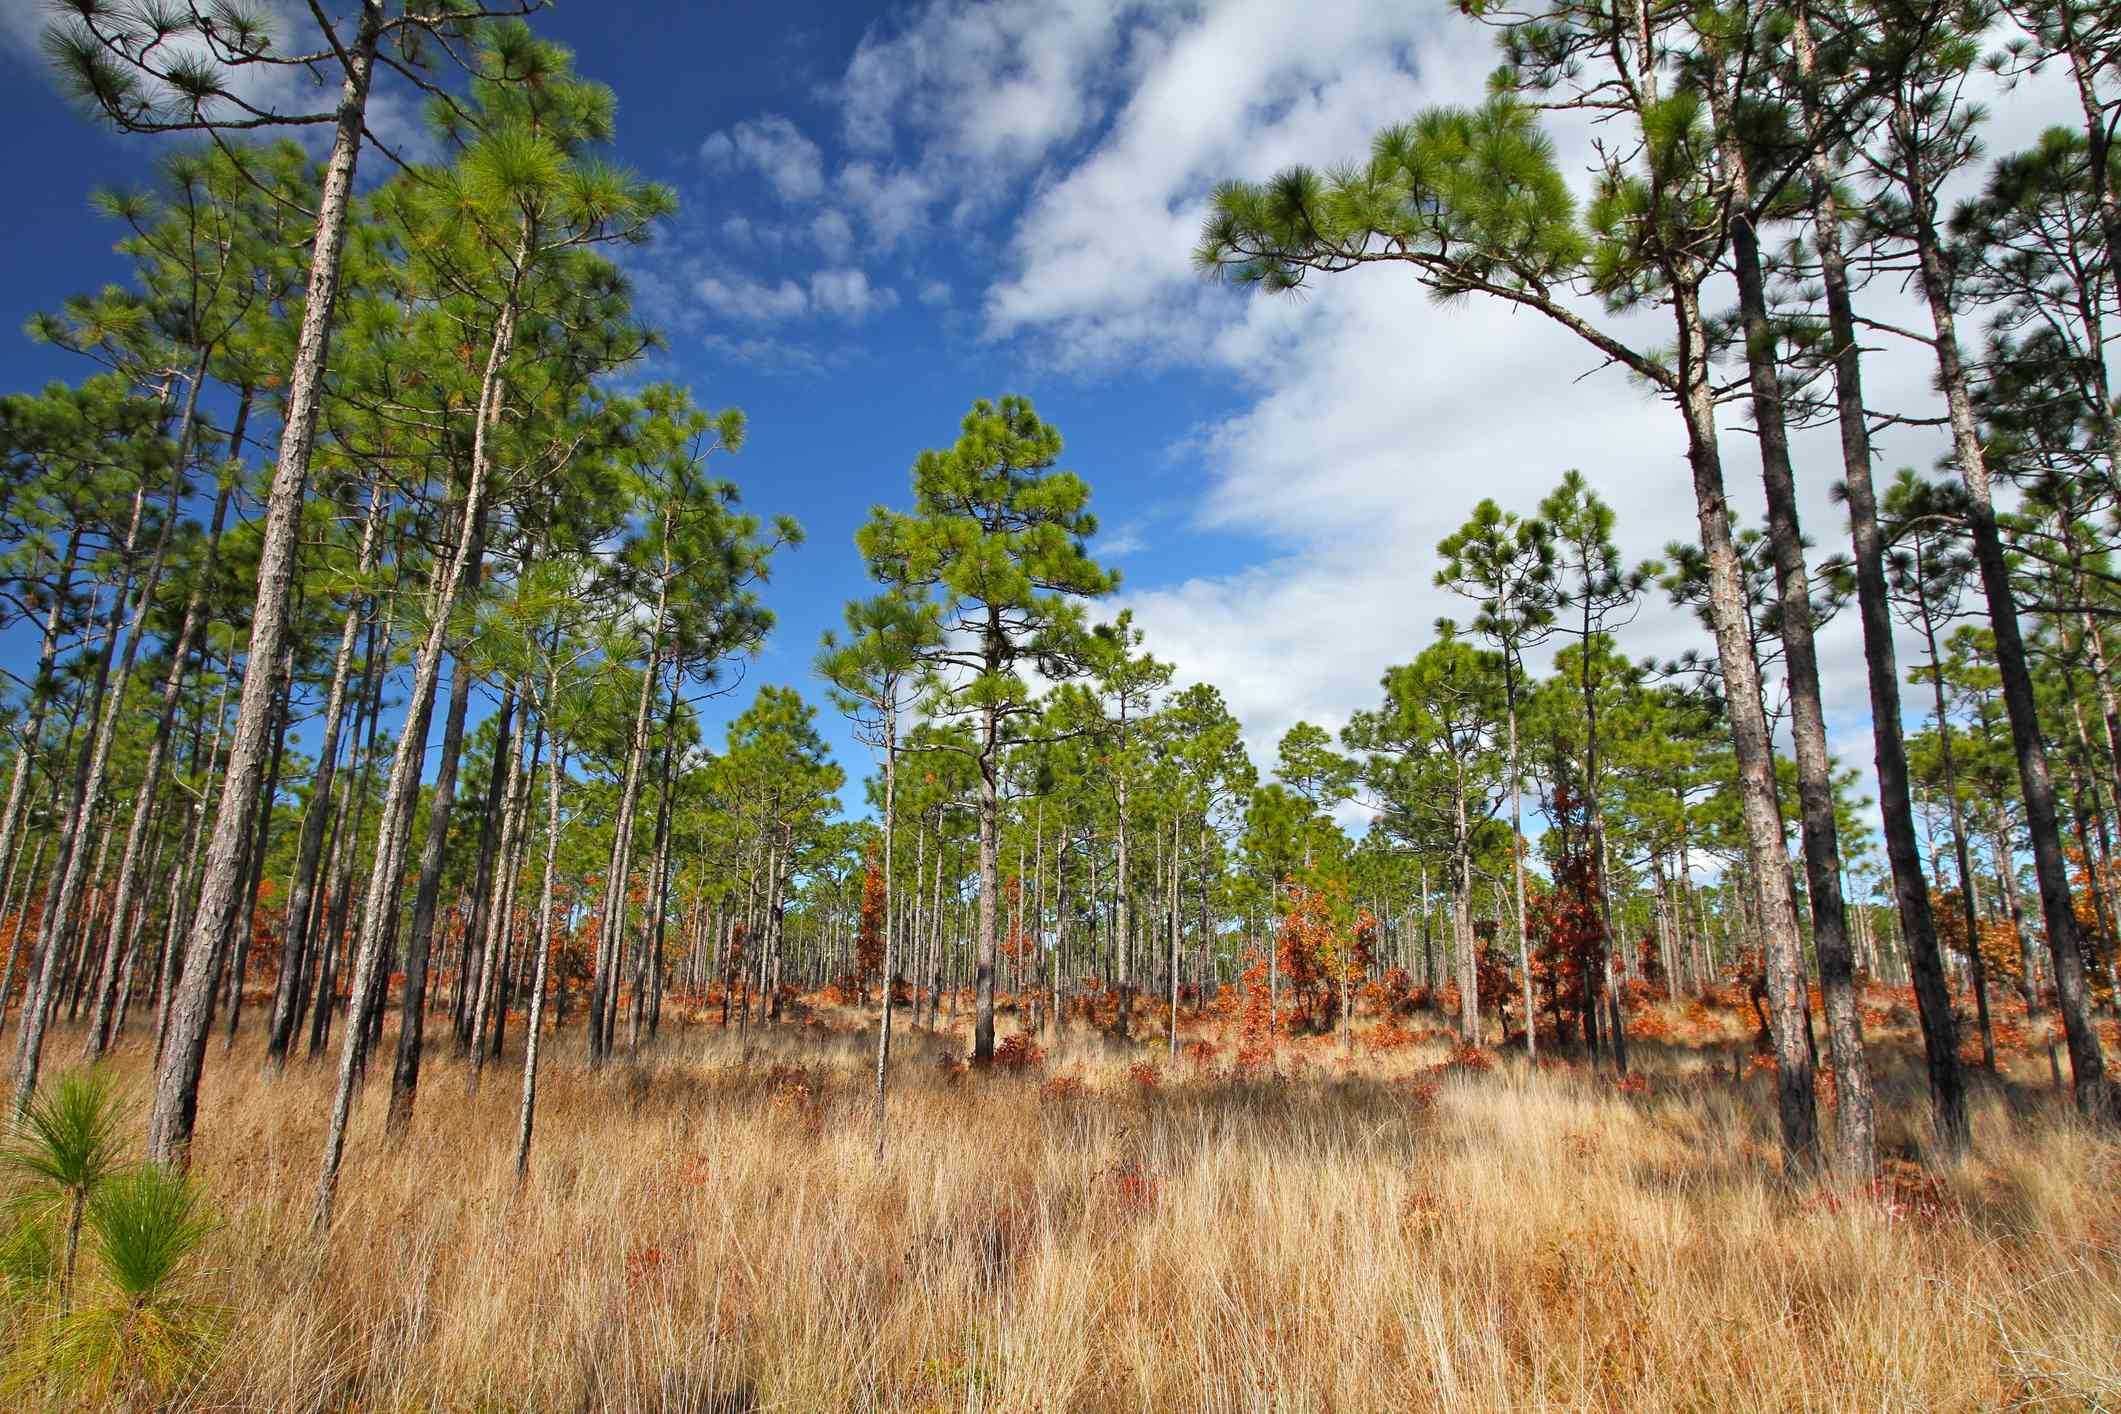 Towering longleaf pines and golden grasses under blue sky